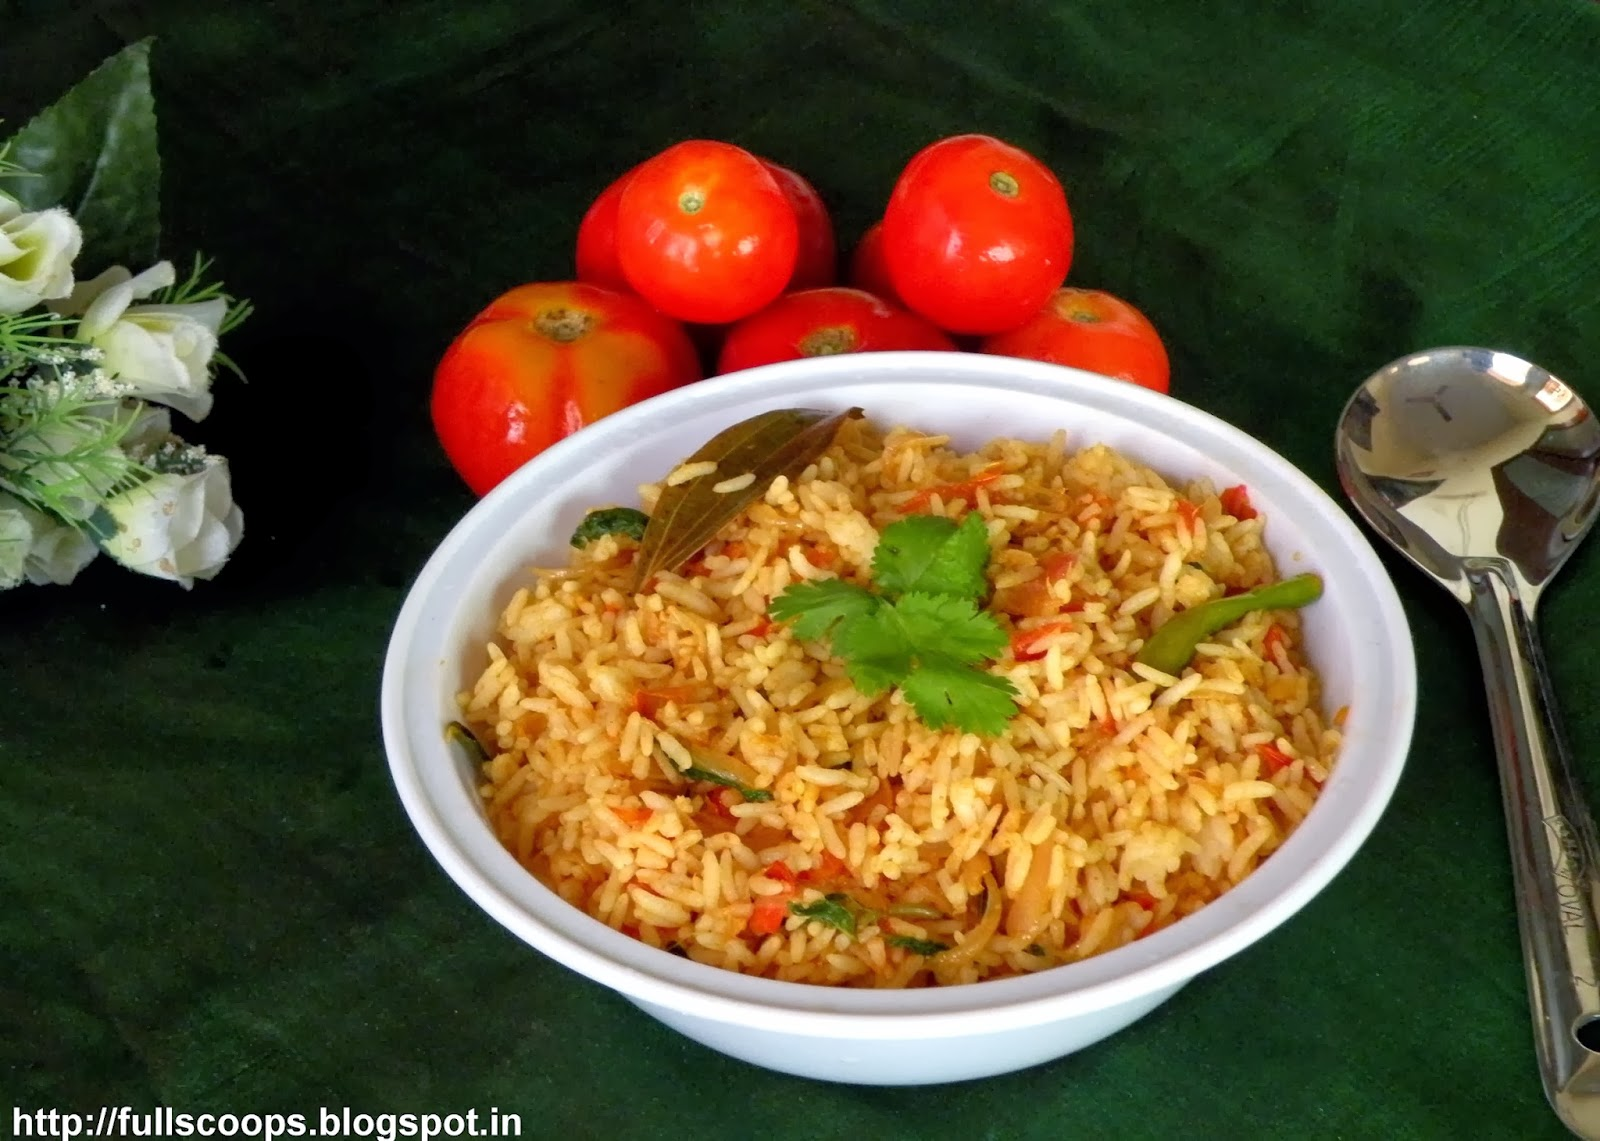 Tomato rice recipe thakkali sadam recipe full scoops it is so easy and simple to make and great for lunch boxes too it can also be made with left over rice or can be made with basmati rice ccuart Choice Image